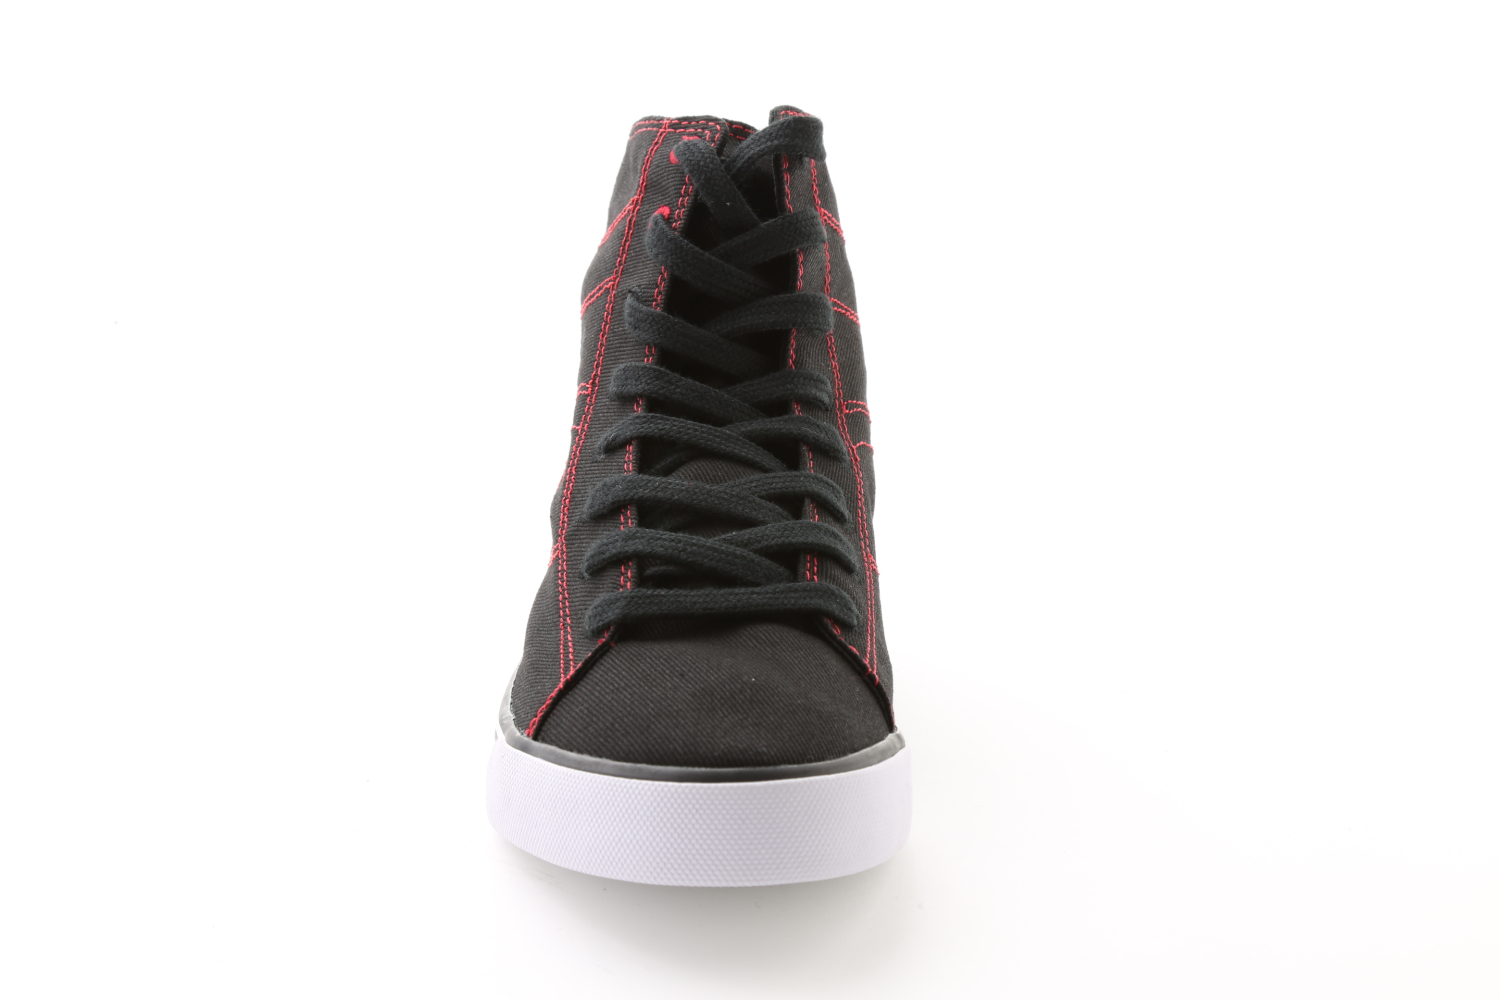 Pastry Adult Canvas High Top Dance Sneaker Black/Red